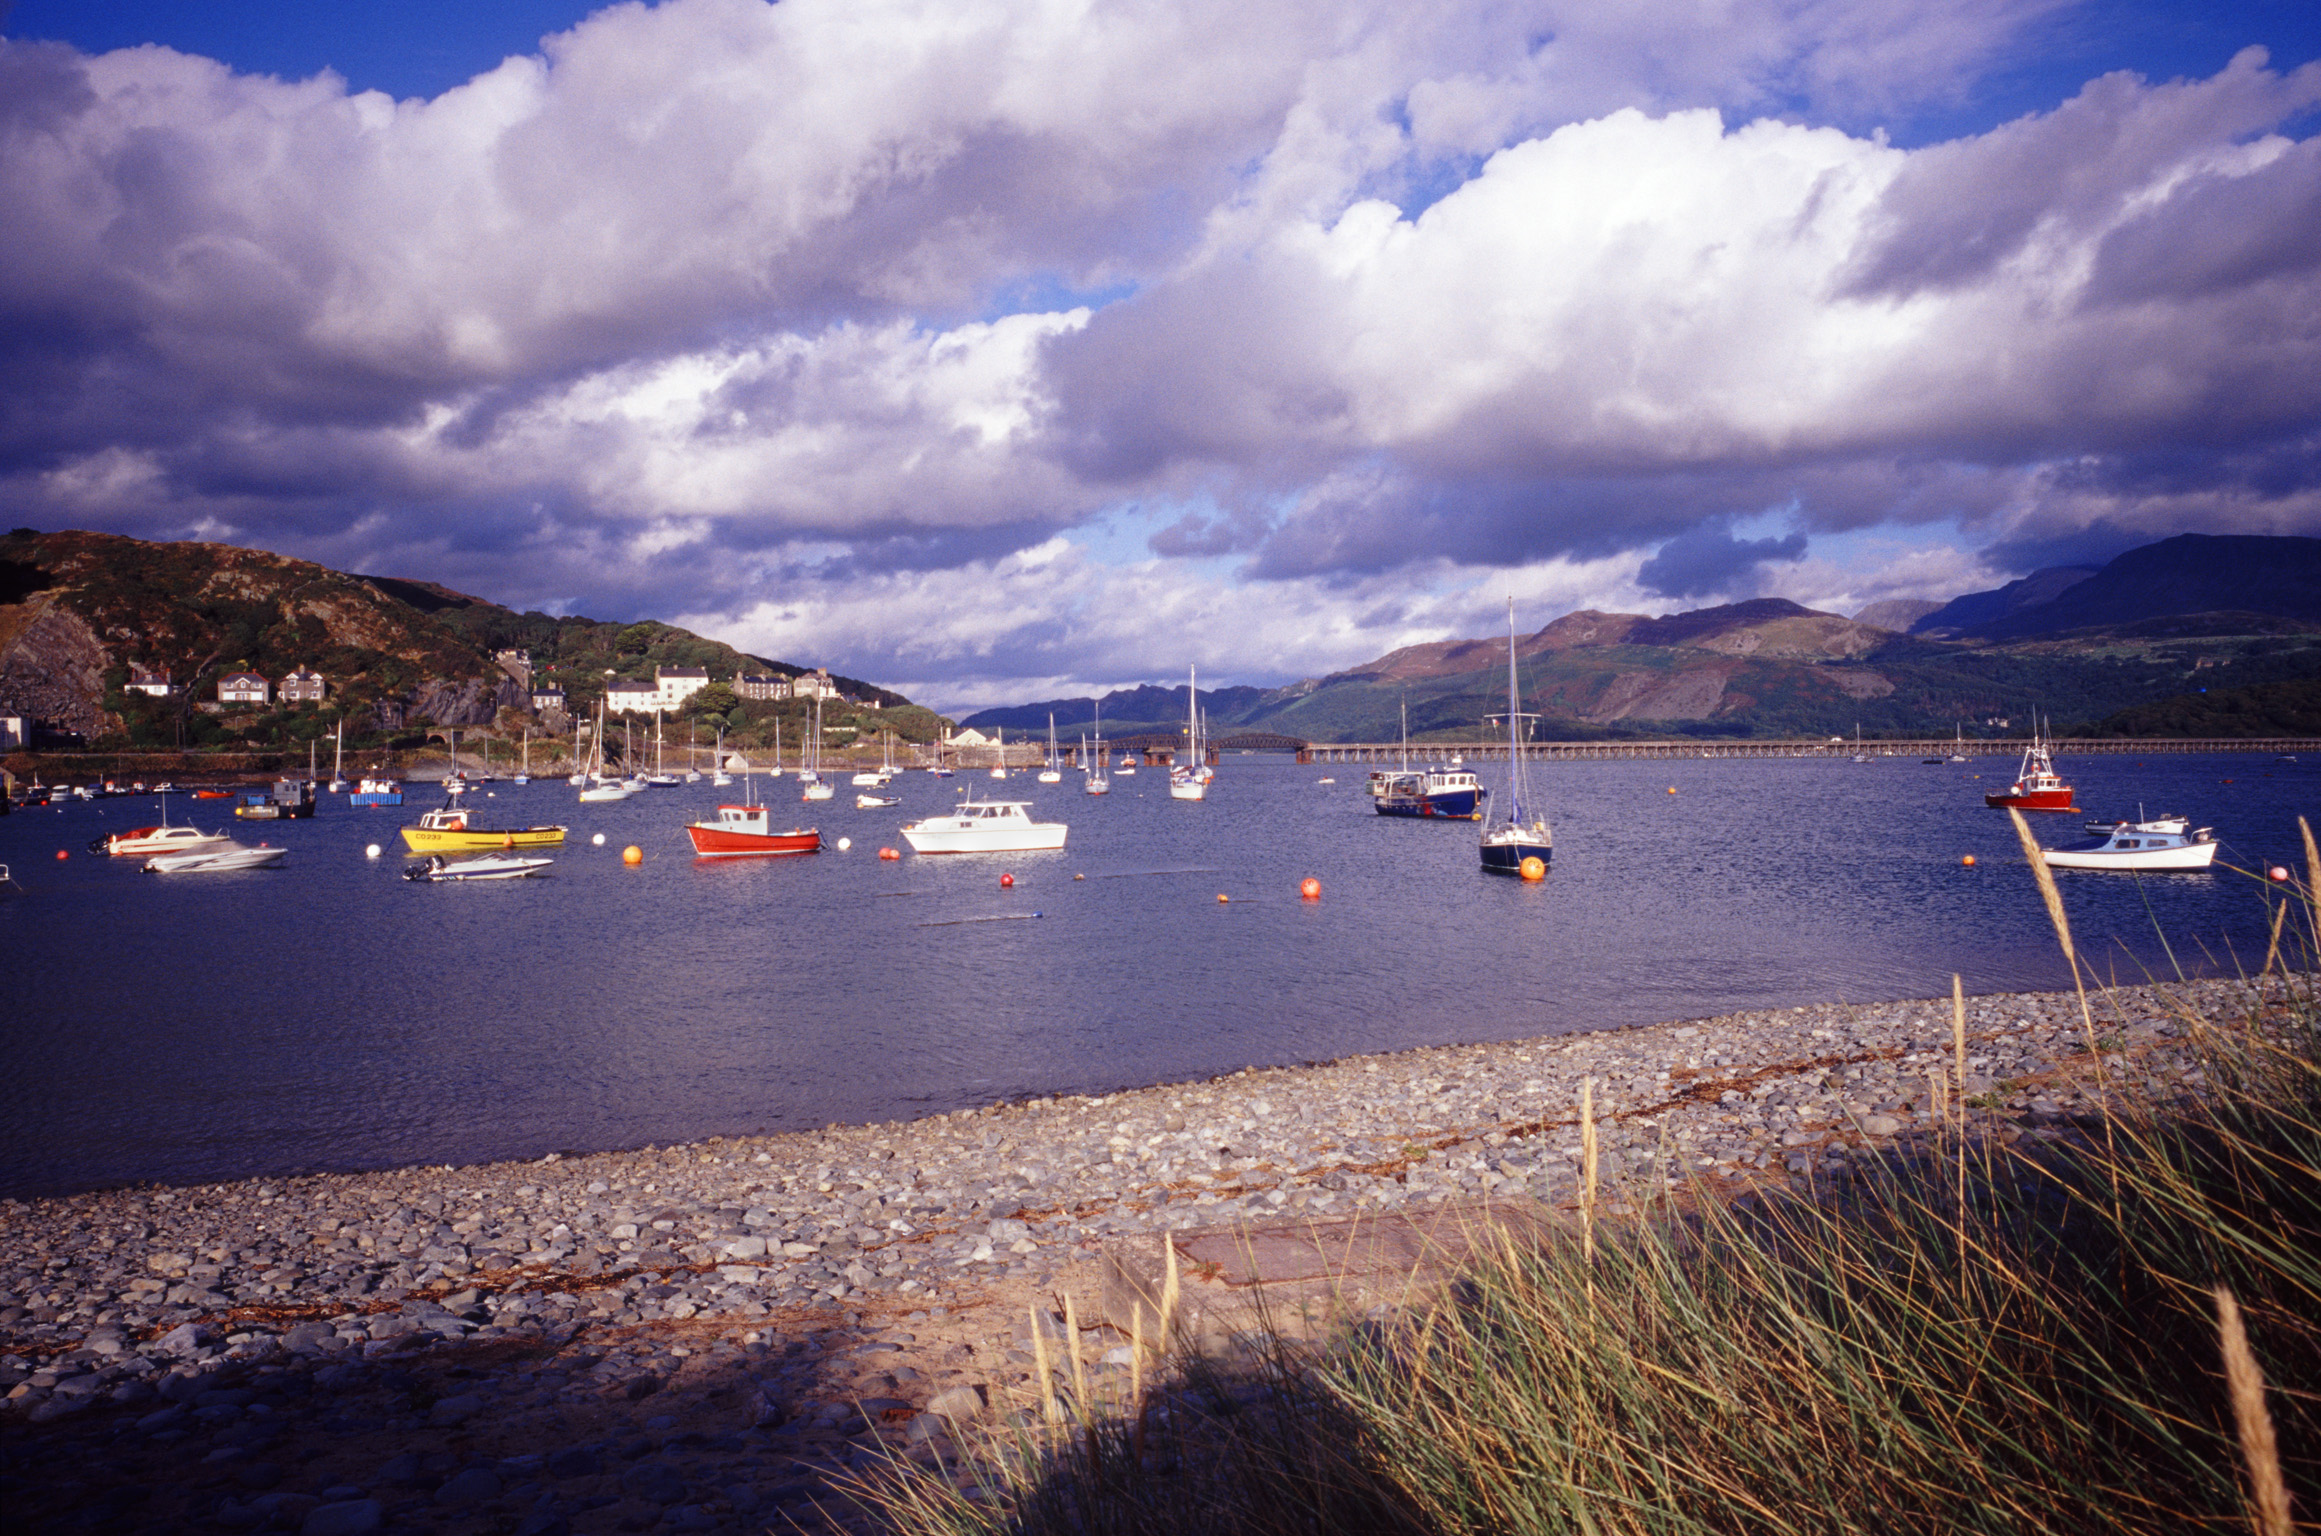 Boats moored in the sheltered water of the harbour at Barmouth, Wales in a picturesque landscape view